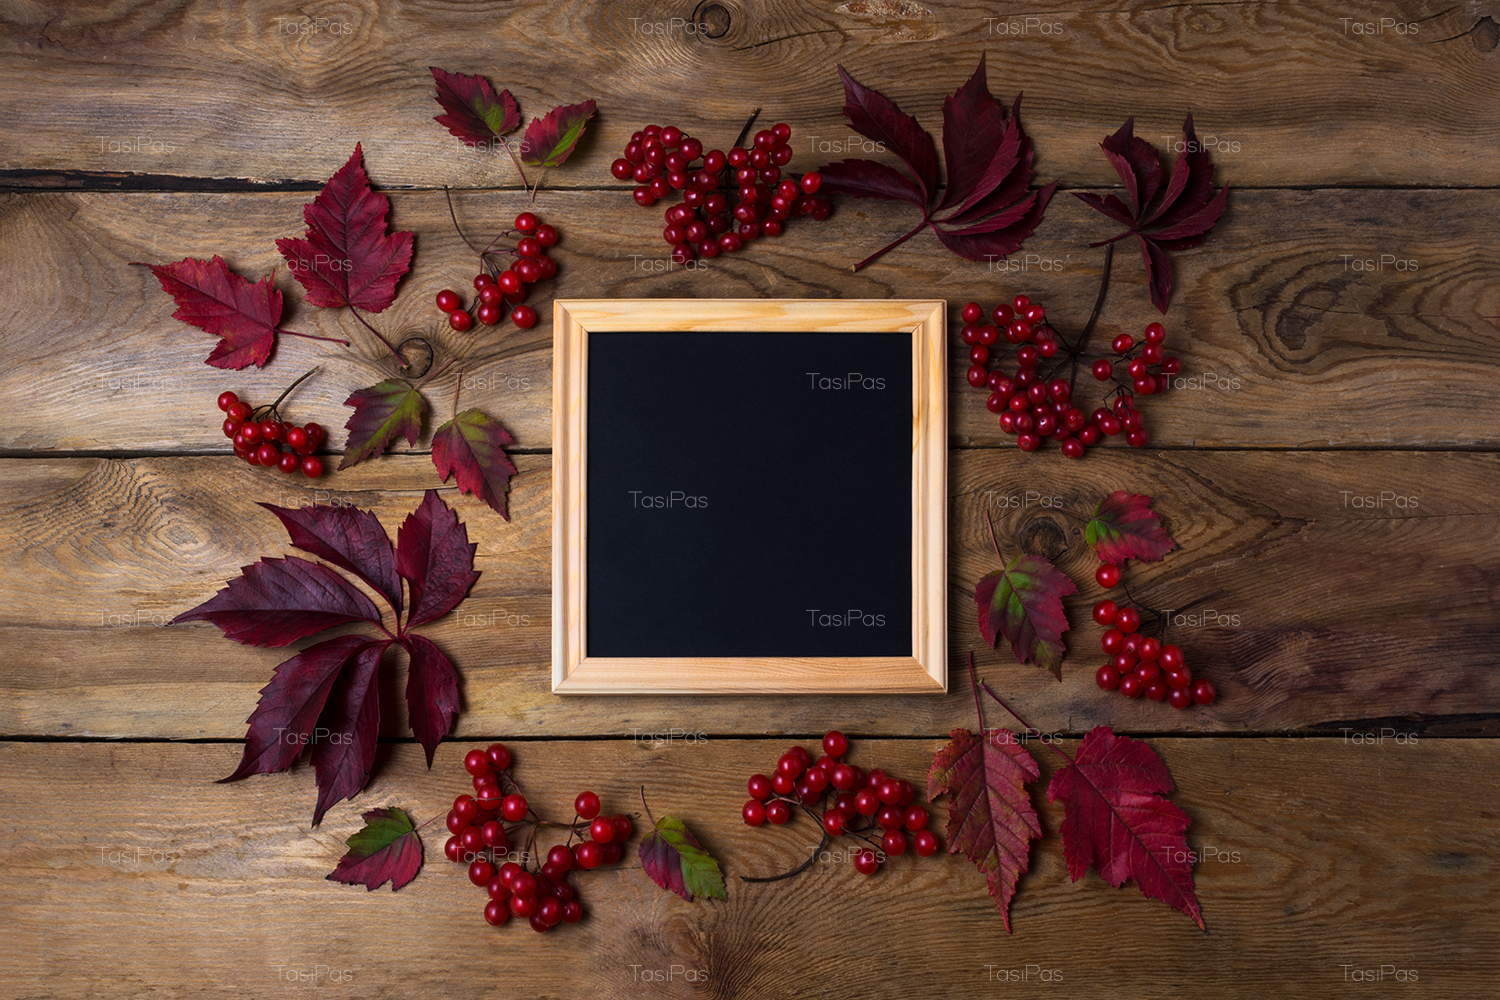 Rustic square frame mockup with viburnum berries example image 4